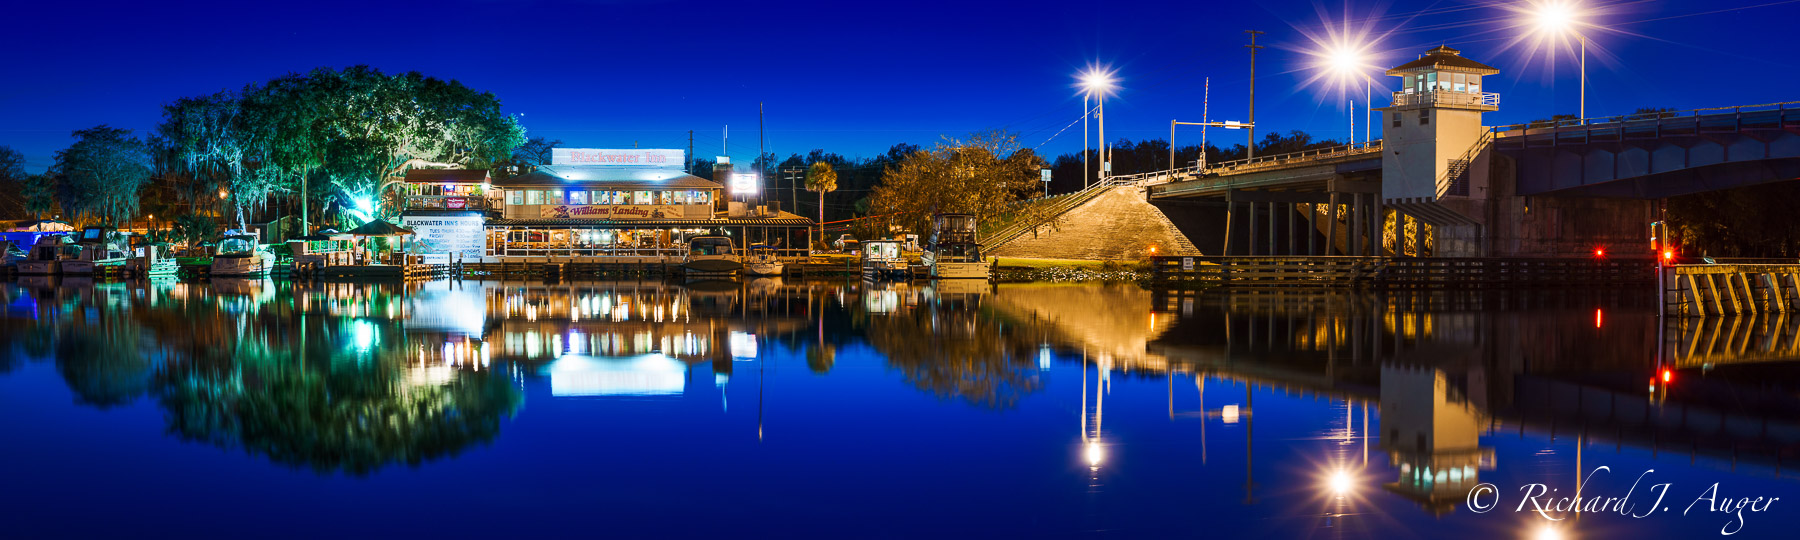 Astor Bridge, St Johns River, Florida, Night, Lights, River, Panorama, Blues, Long Exposure